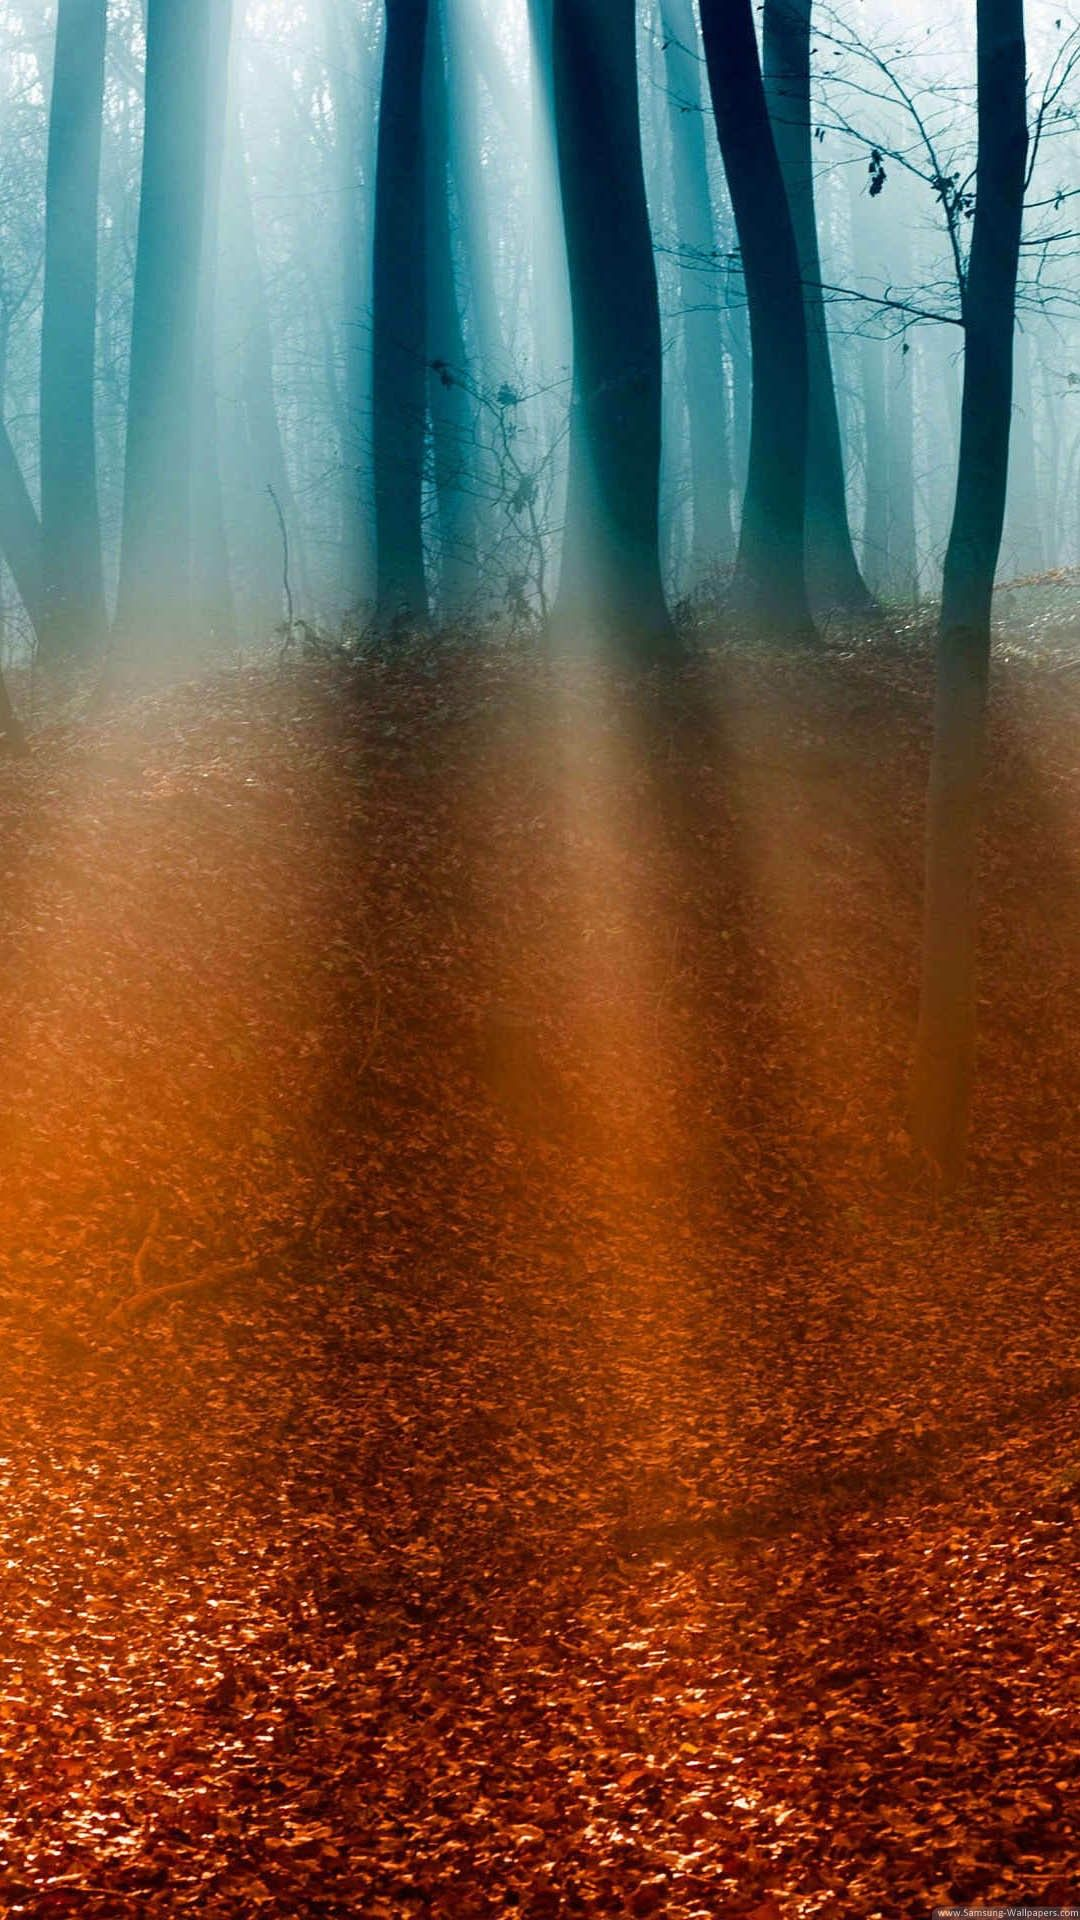 Hd wallpaper home screen - Nature Iphone 6 Plus Wallpapers Light Rays Forest Floor Iphone 6 Plus Hd Wallpaper